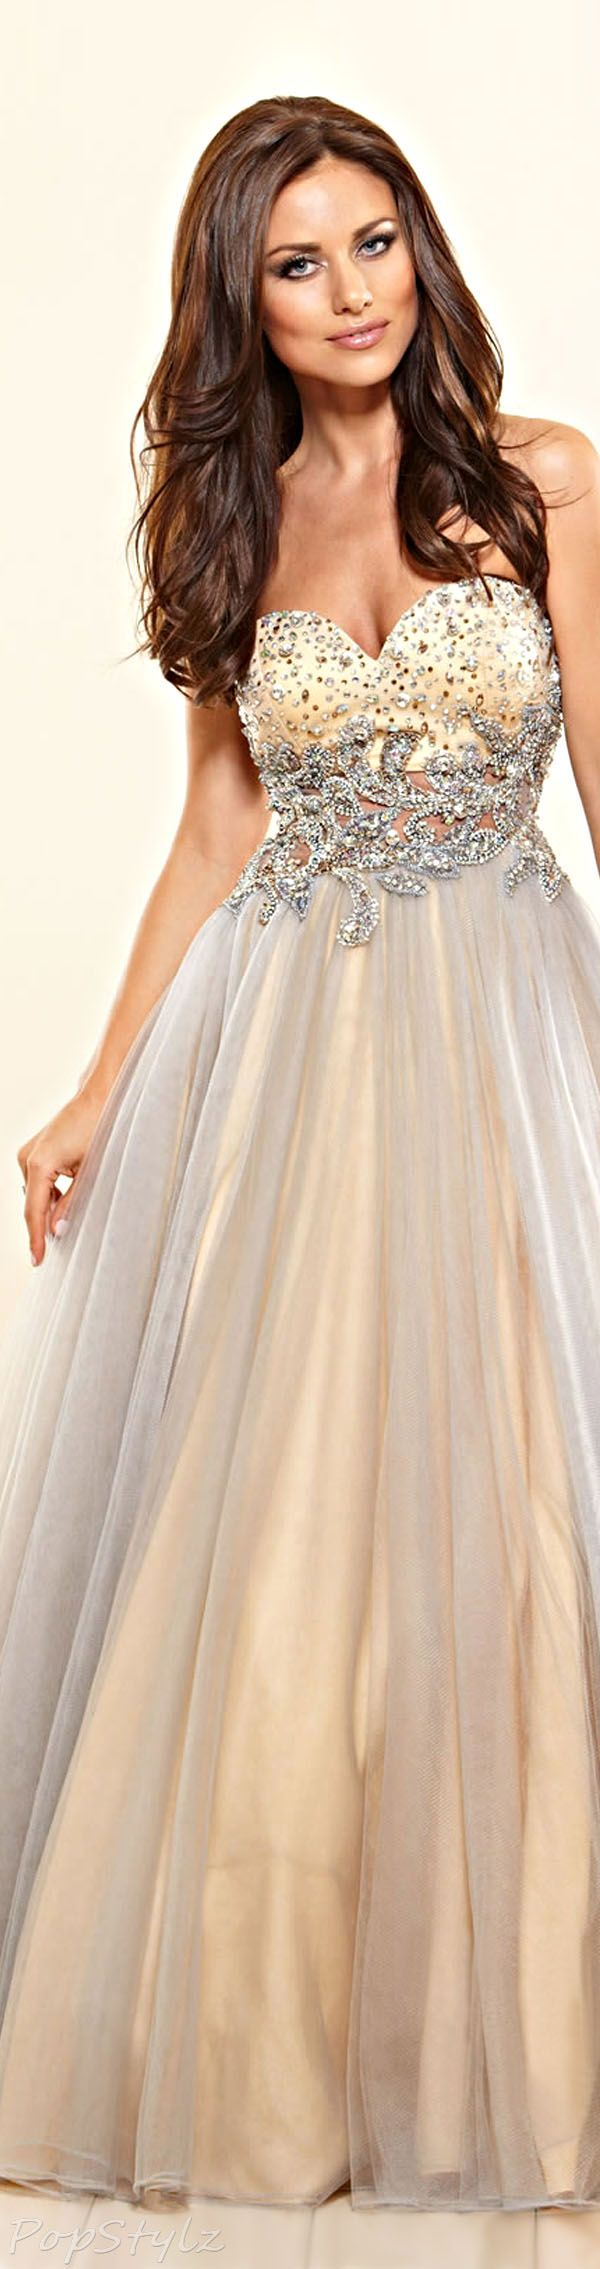 Terani Couture Evening Gown | Formal Dresses | Pinterest ...